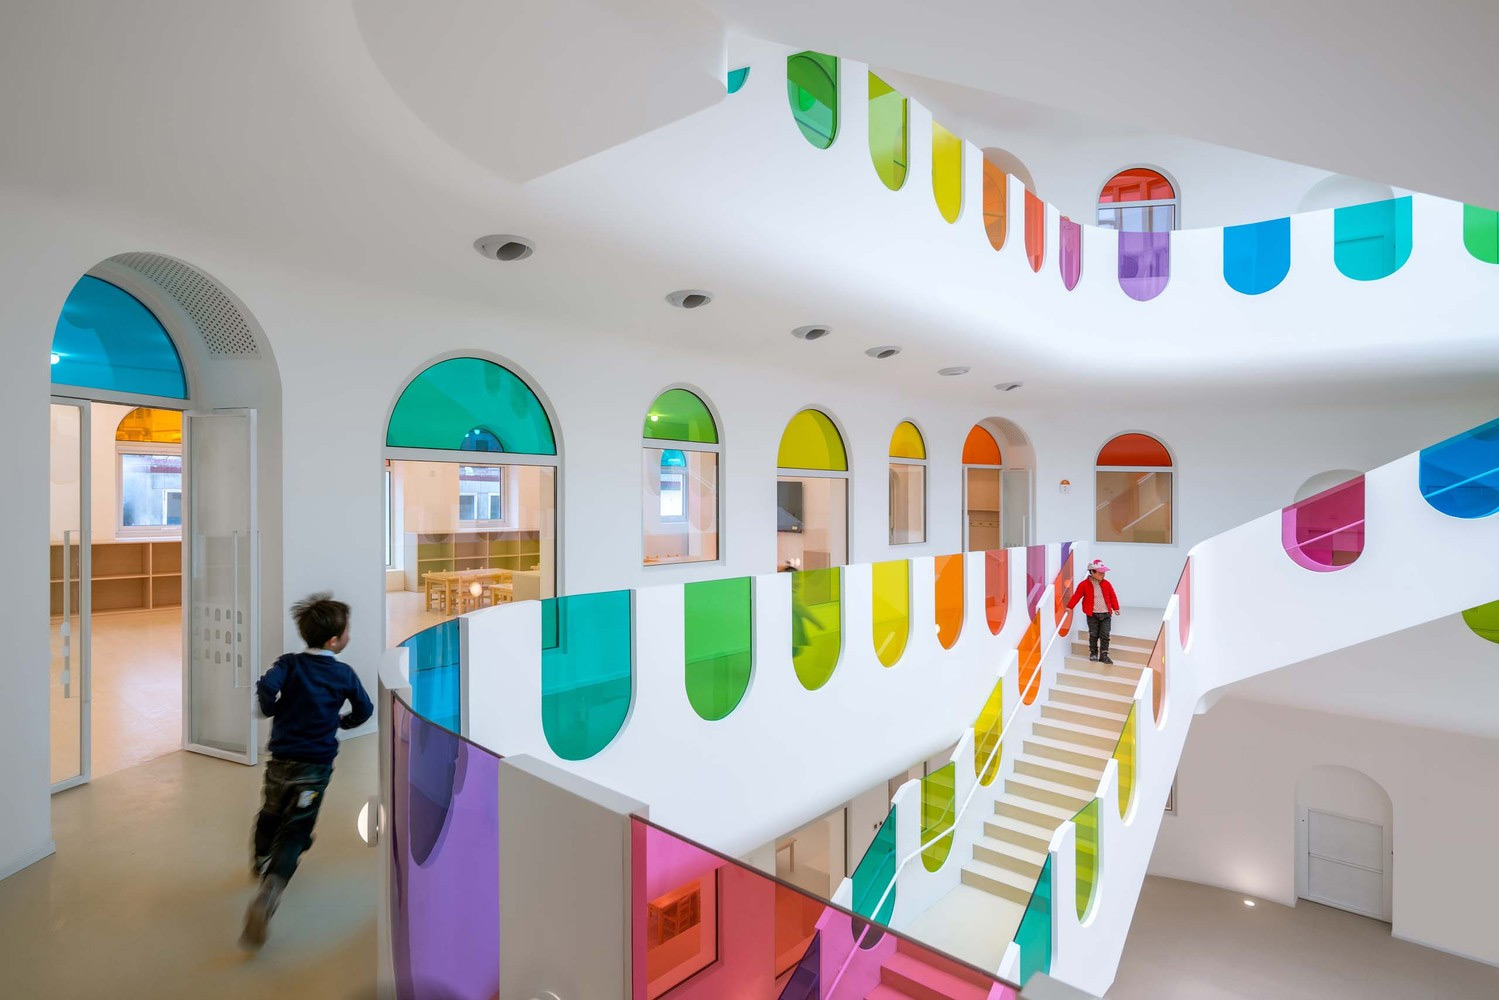 Hundreds of Rainbow Glass Panels Emit a Rotating Kaleidoscope in a Playful Kindergarten